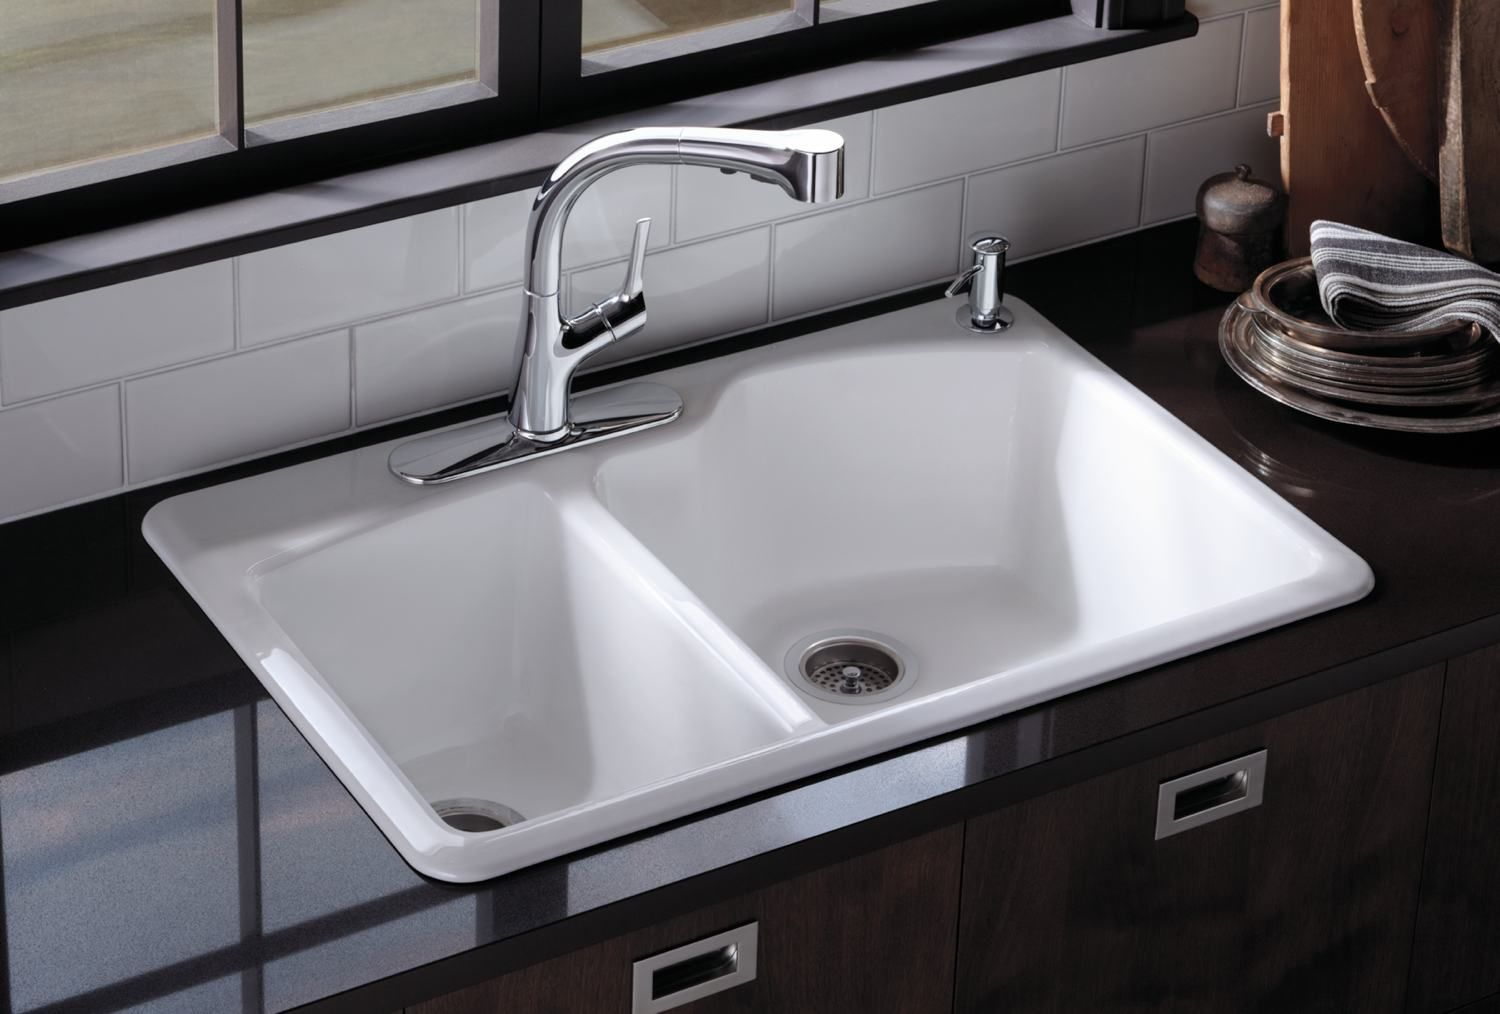 Extra Large Kitchen Sink - Kitchen Remodel Ideas for Small Kitchen ...